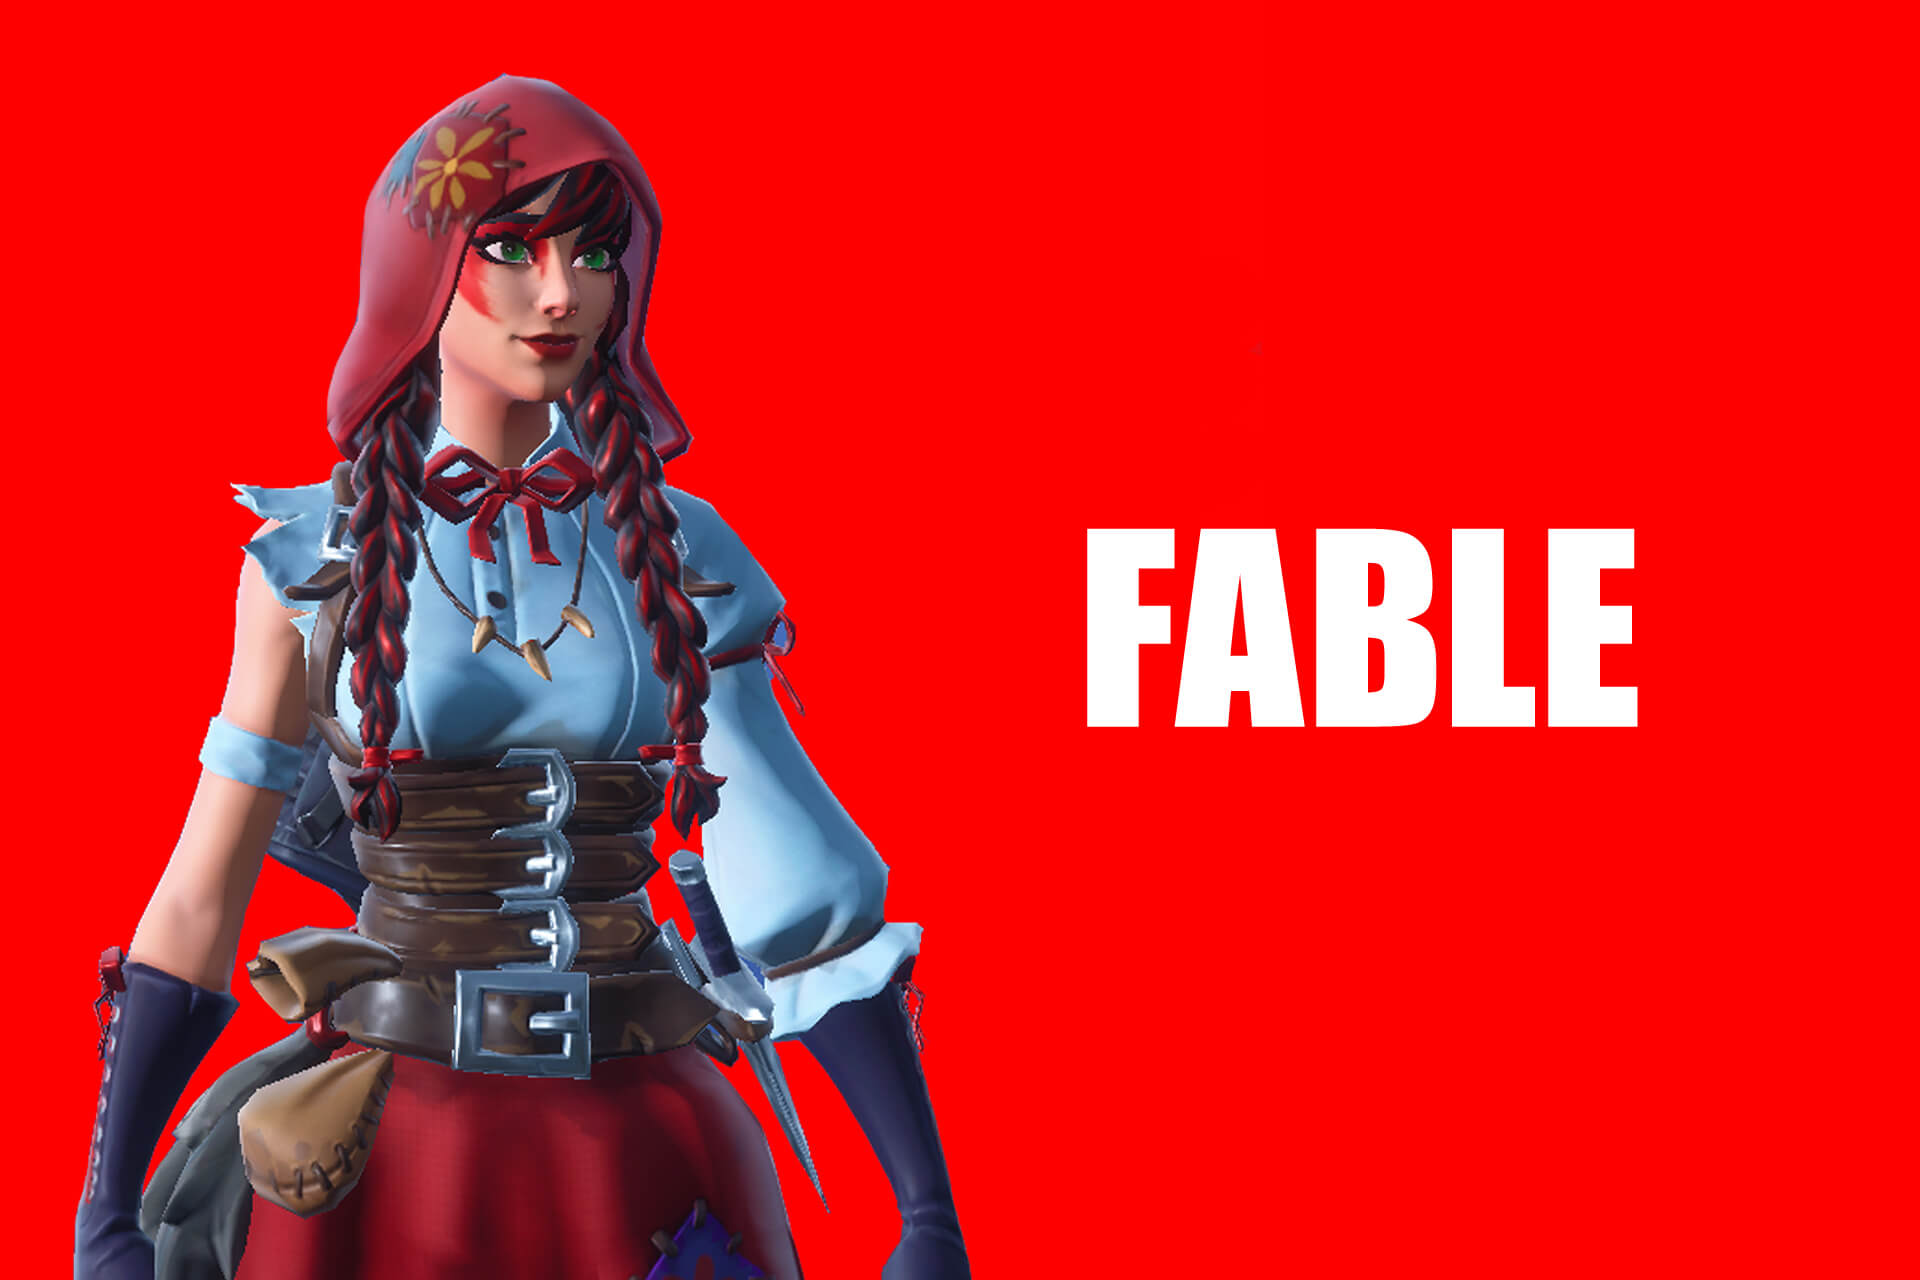 costume-fable1